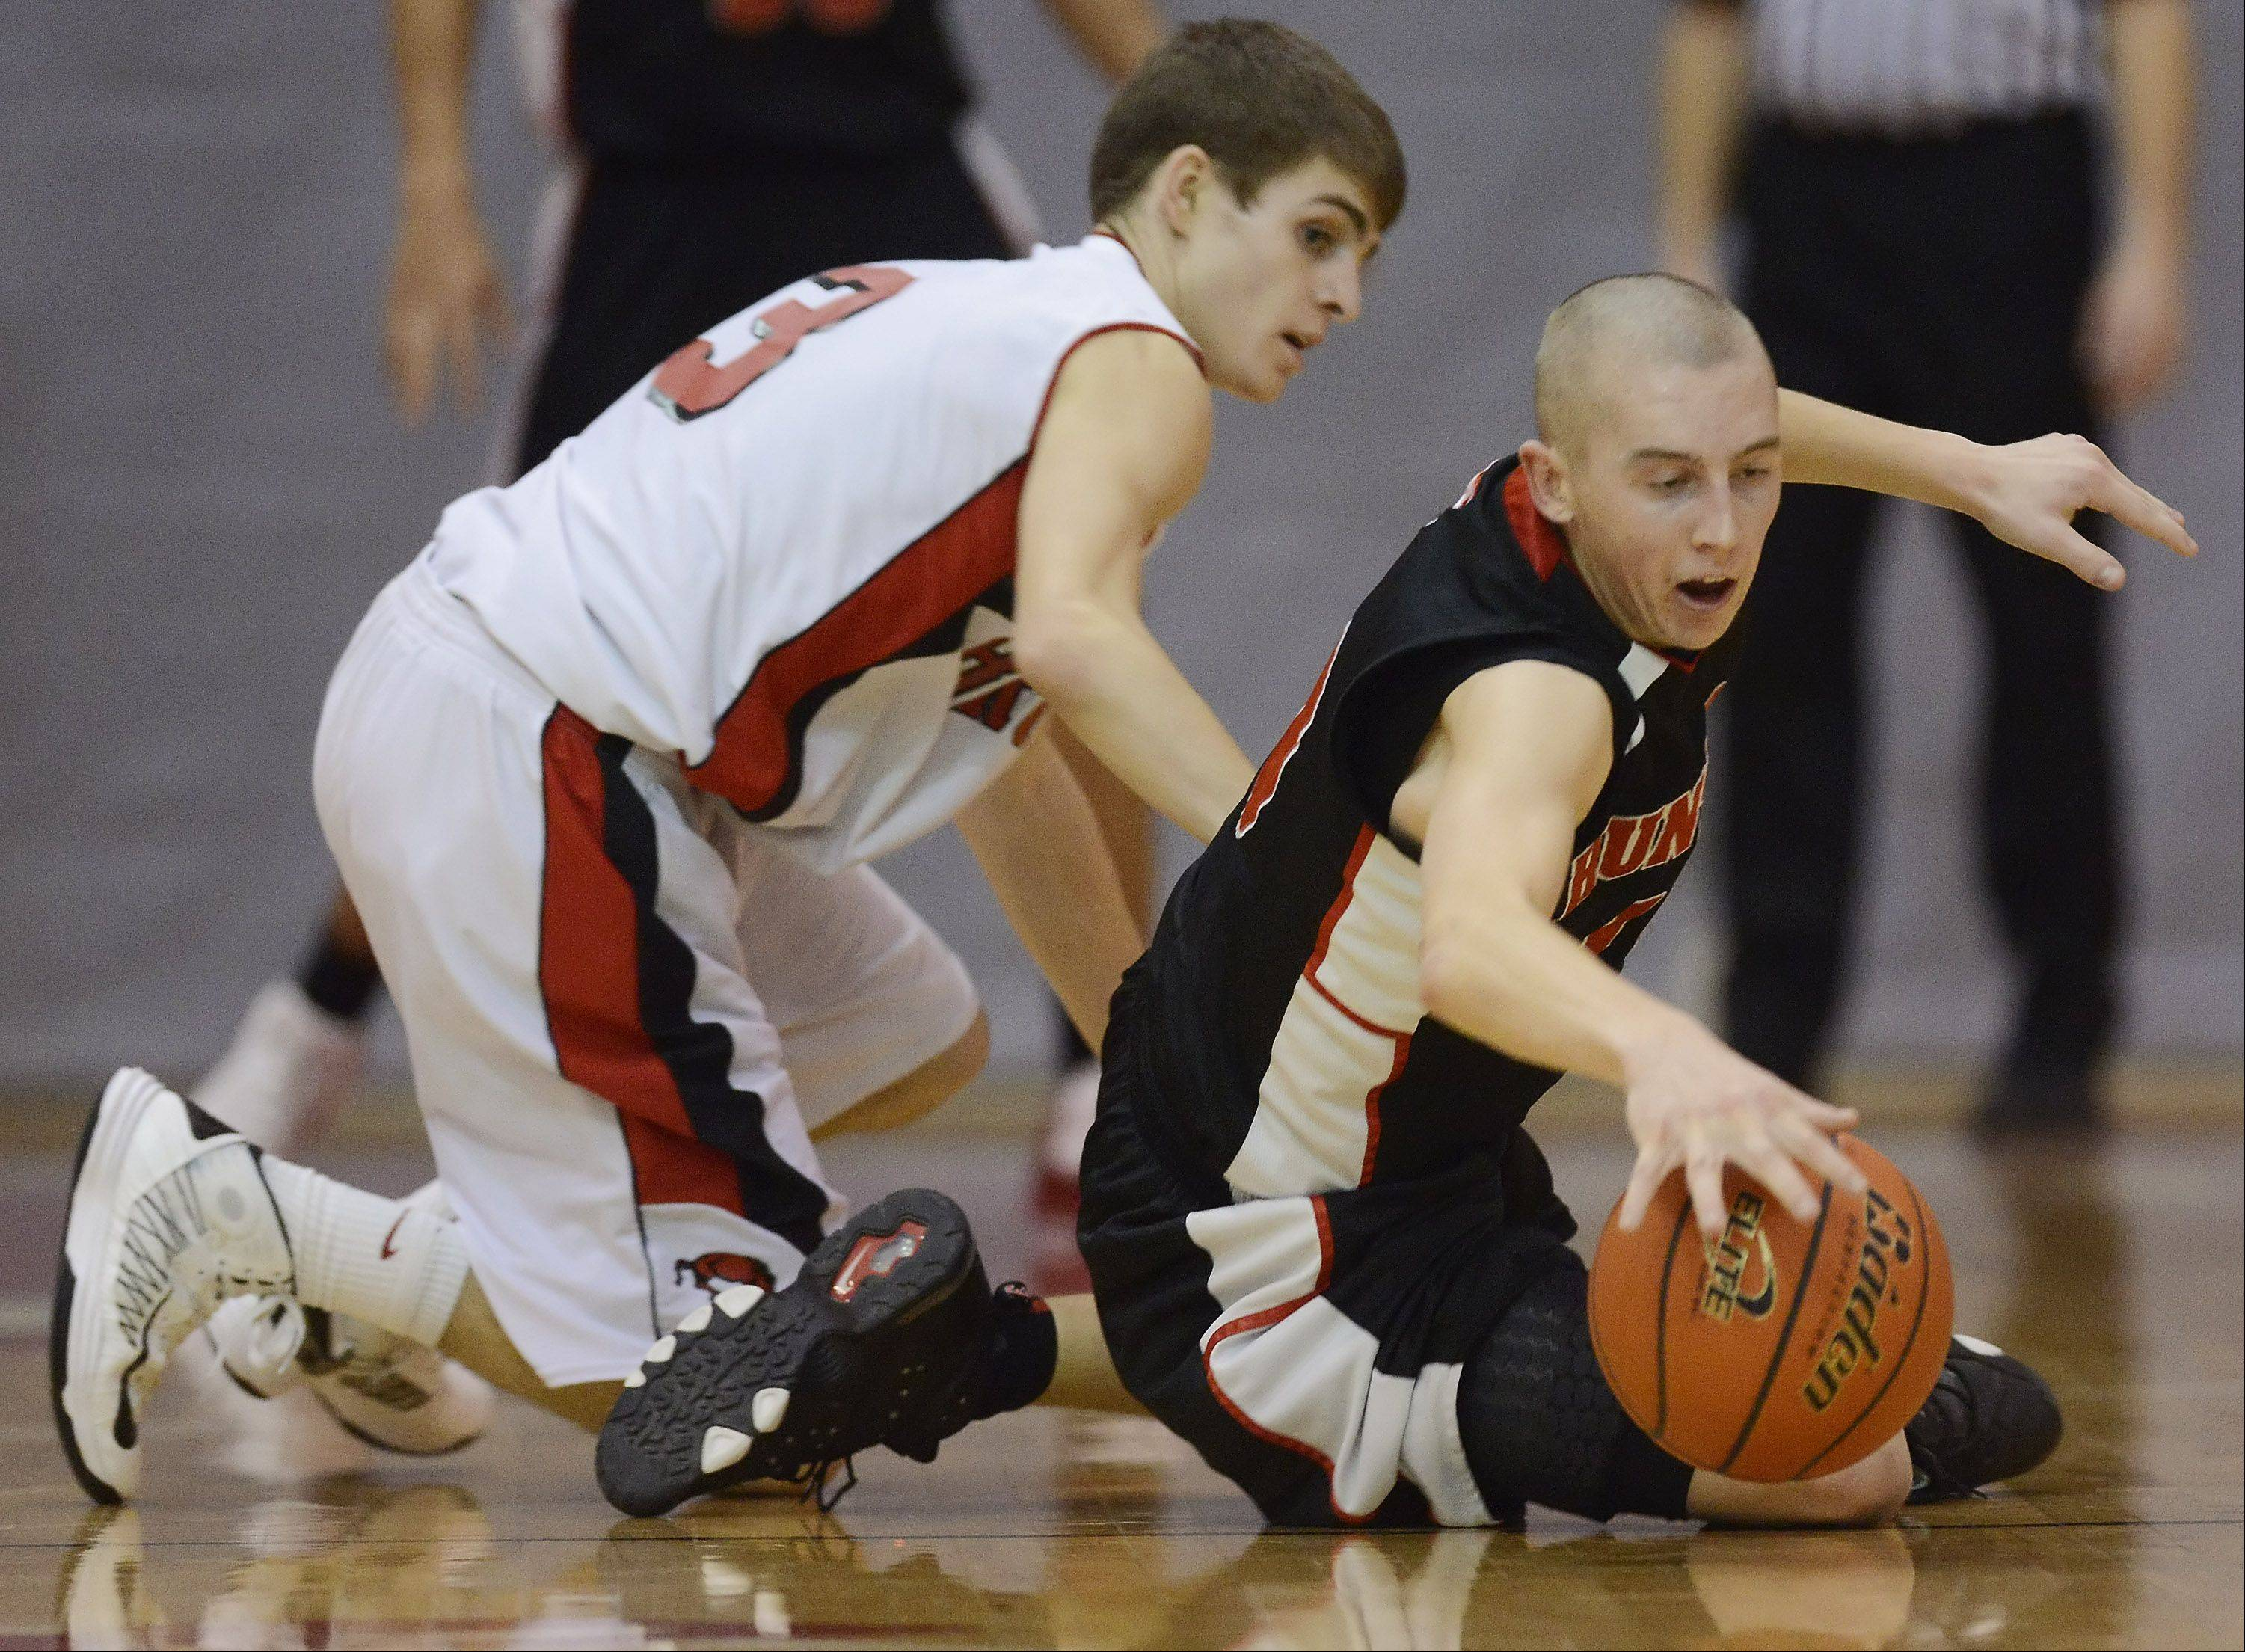 Huntley's TJ Adams, right, dives to the floor for a loose ball in front of Barrington's Brad Zaumseil.